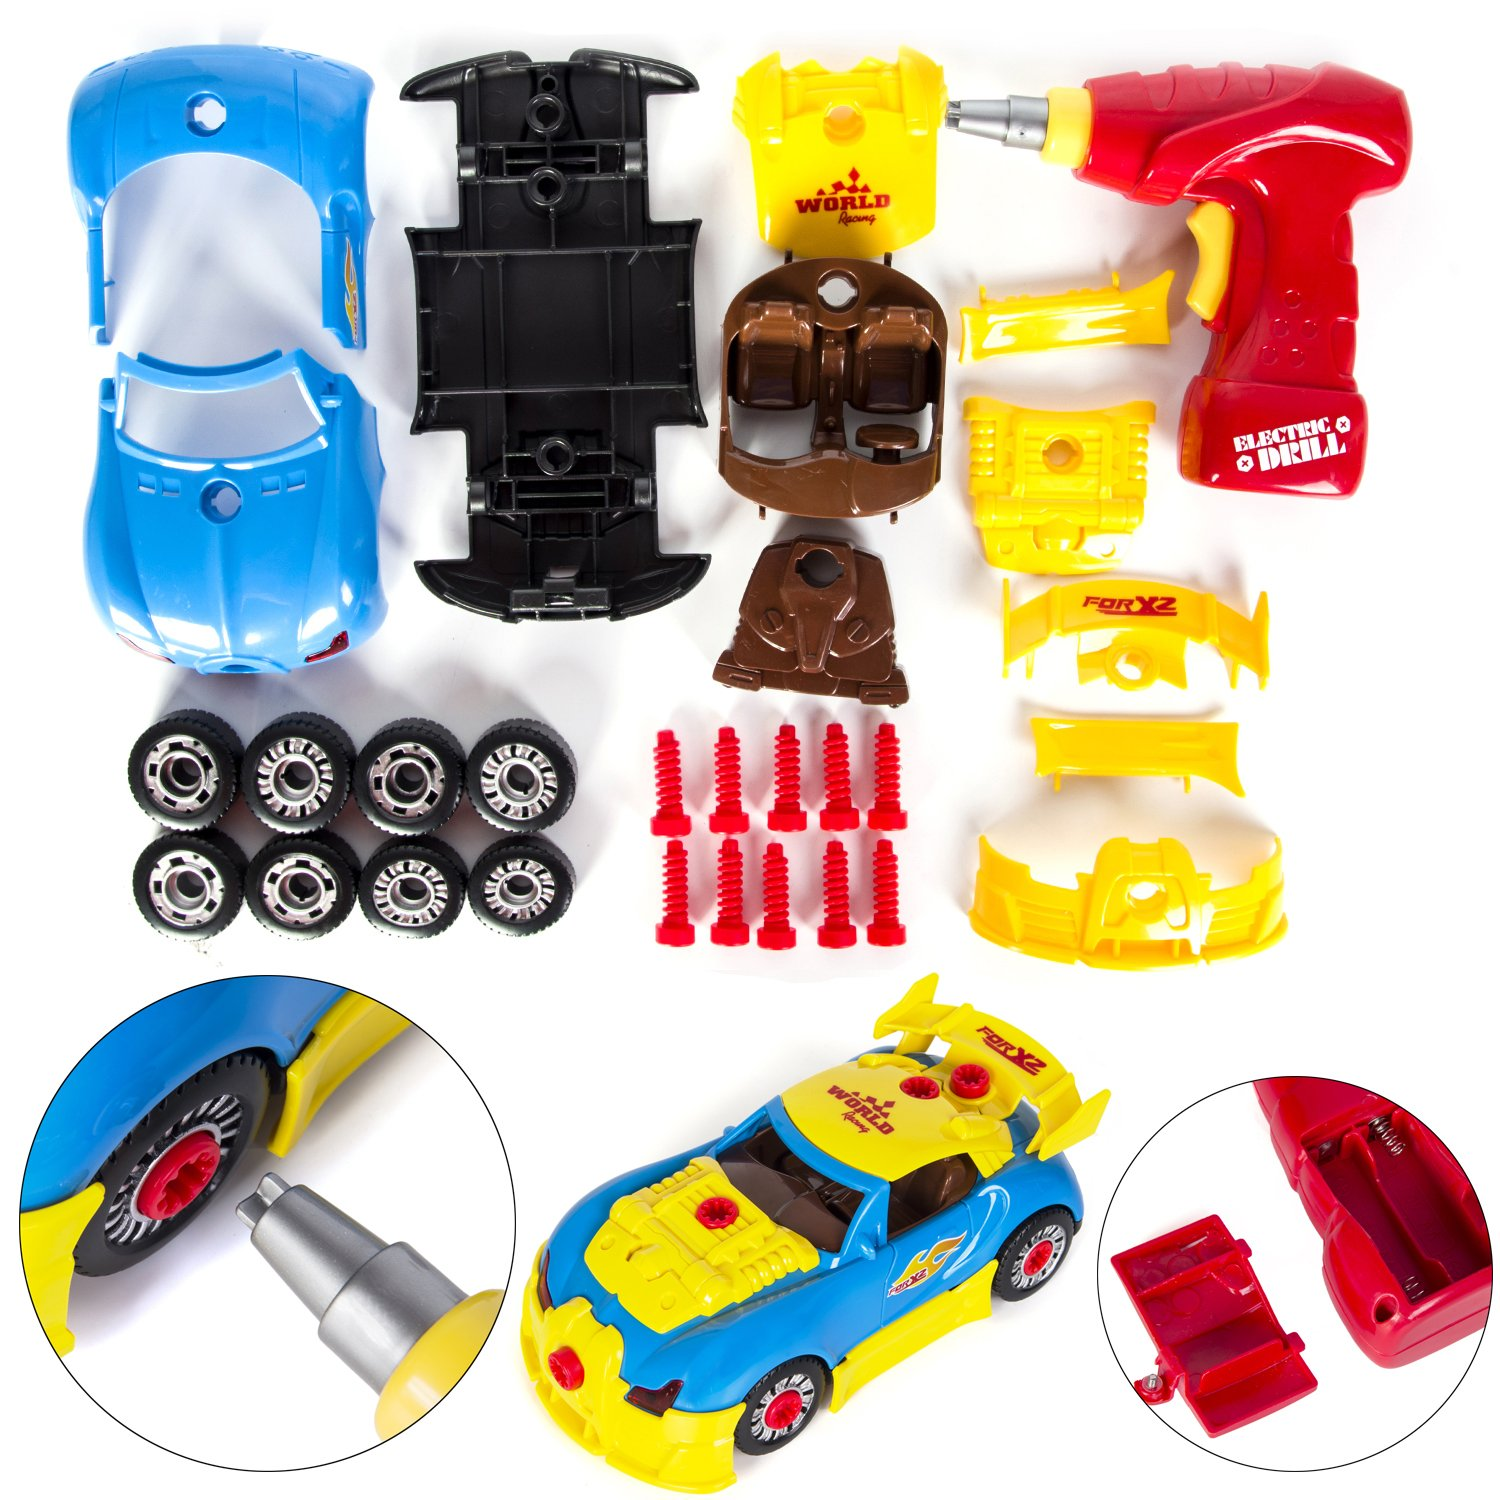 Toy Car Little Mechanic Build Yourself DIY Racecar Assembly Kit